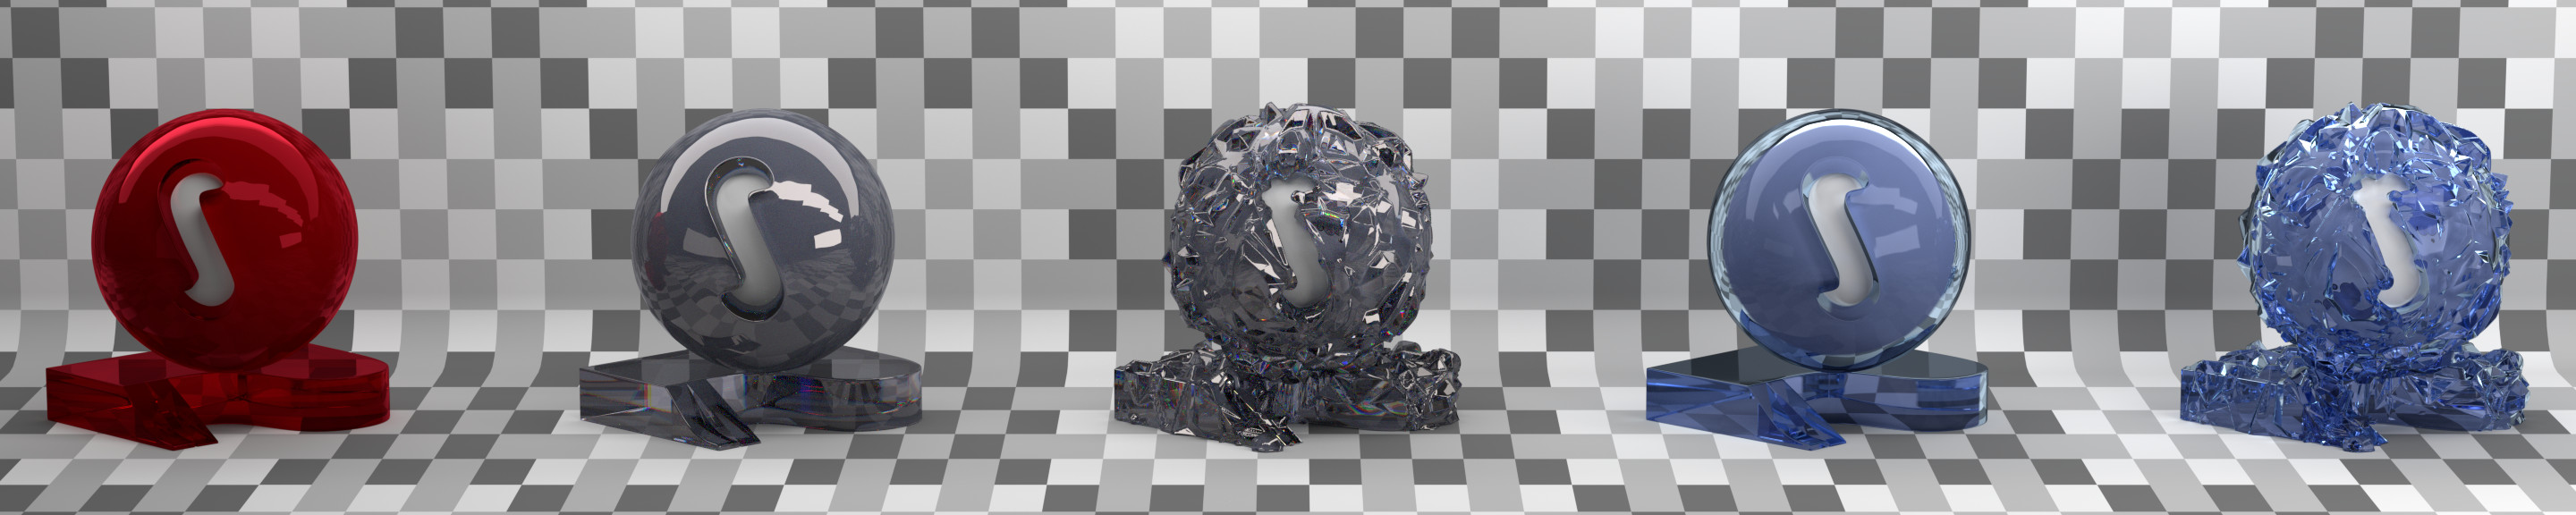 Material studies: red gem, clear crystal with and without displacement, blue crystal with and without displacement.